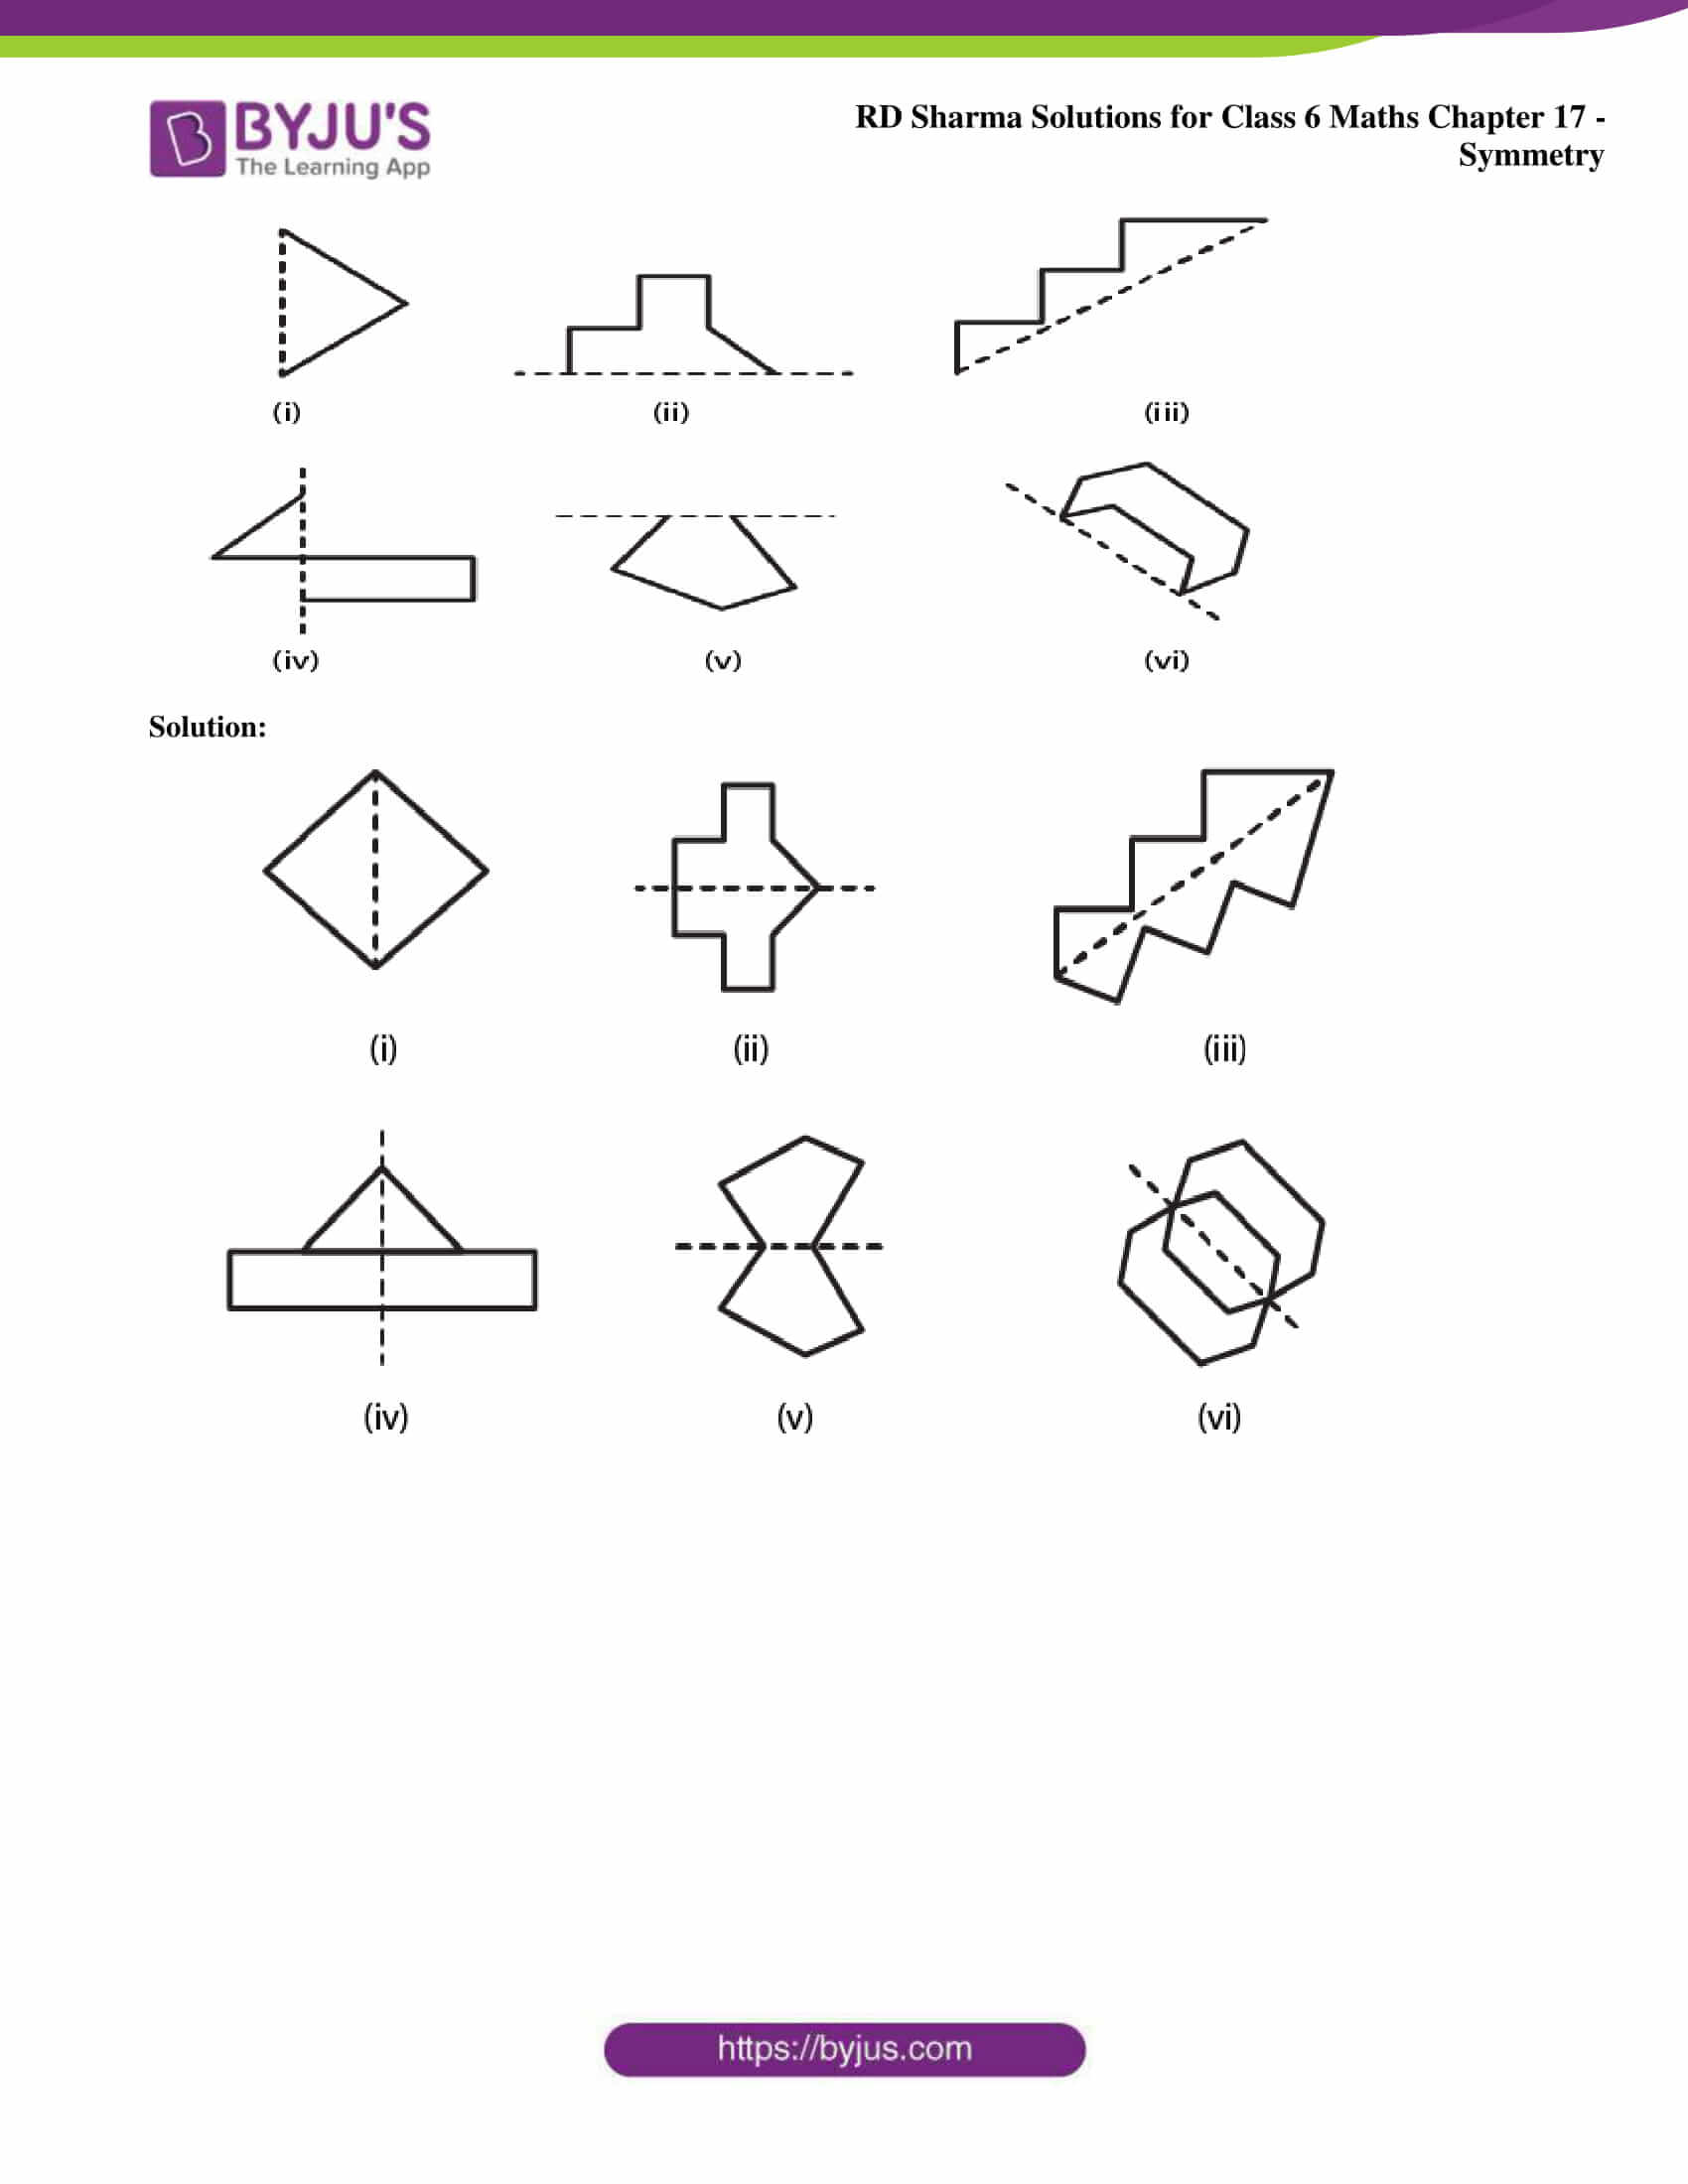 rd sharma solutions nov2020 class 6 maths chapter 17 exercise 1 2